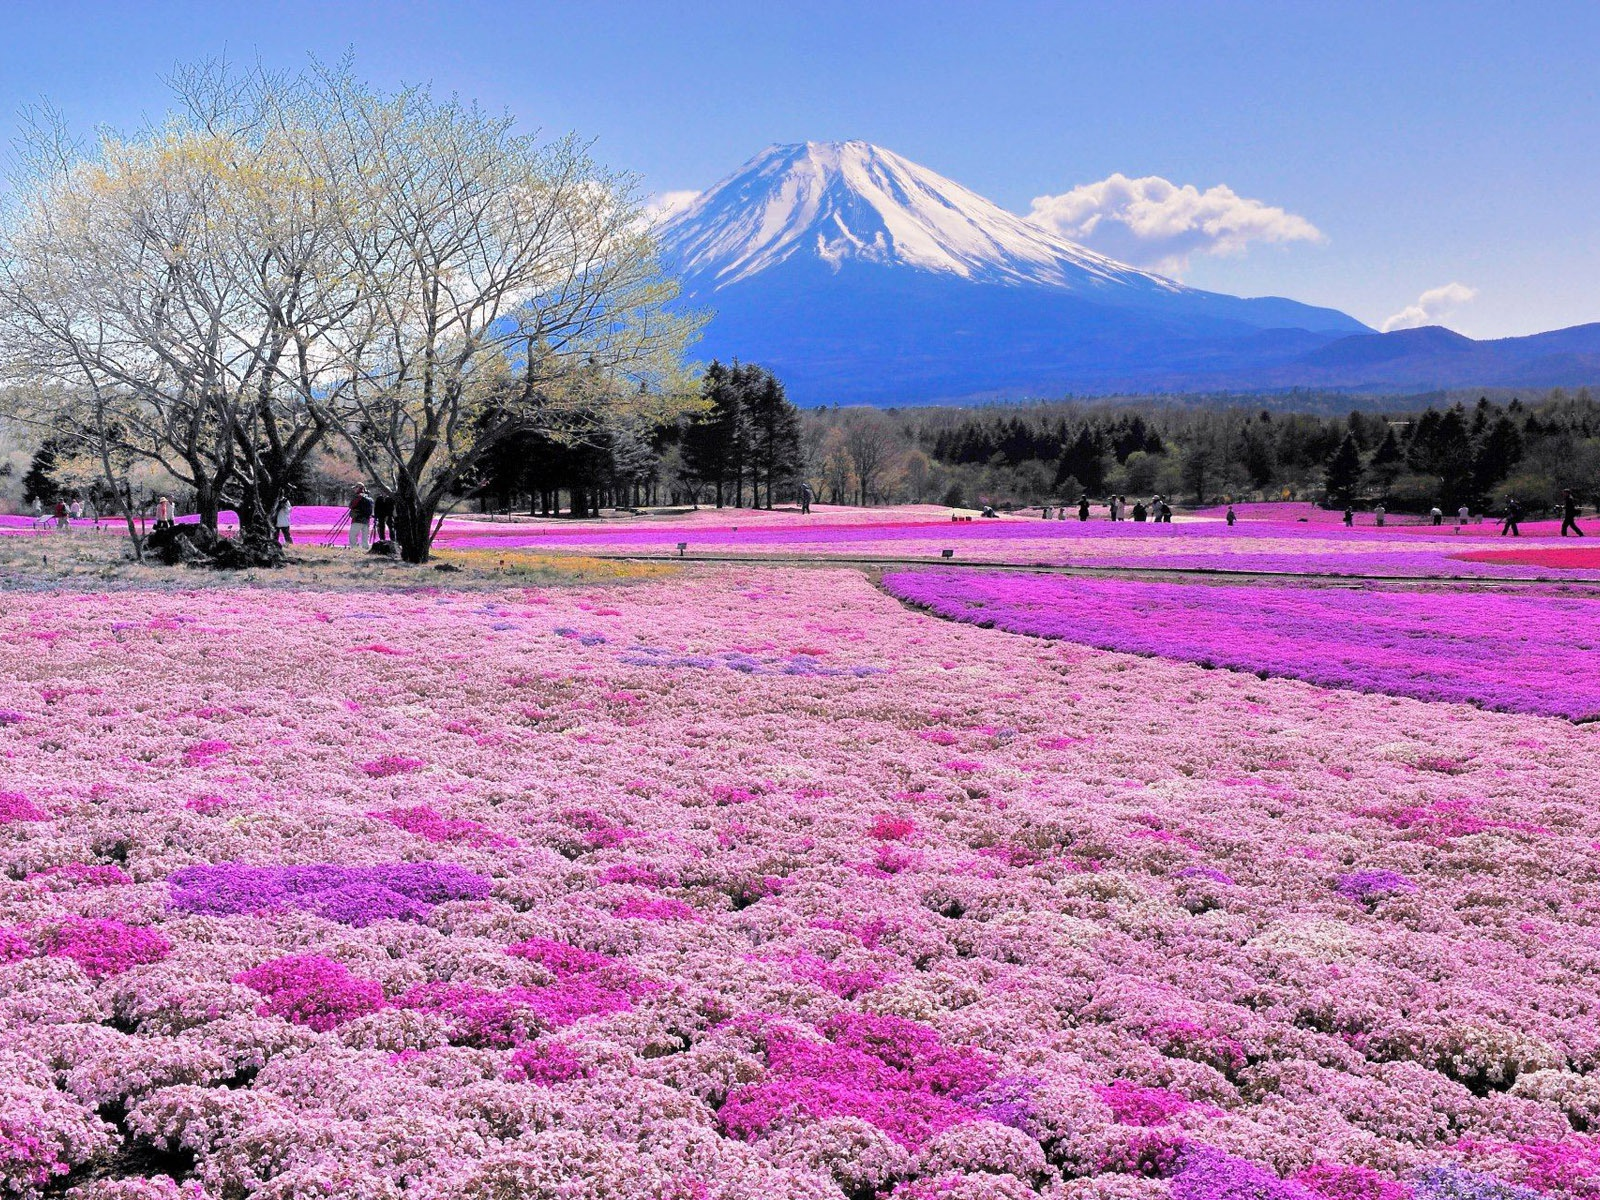 1500x500 Pink Flower Field Mount Fuji Twitter Header Photo